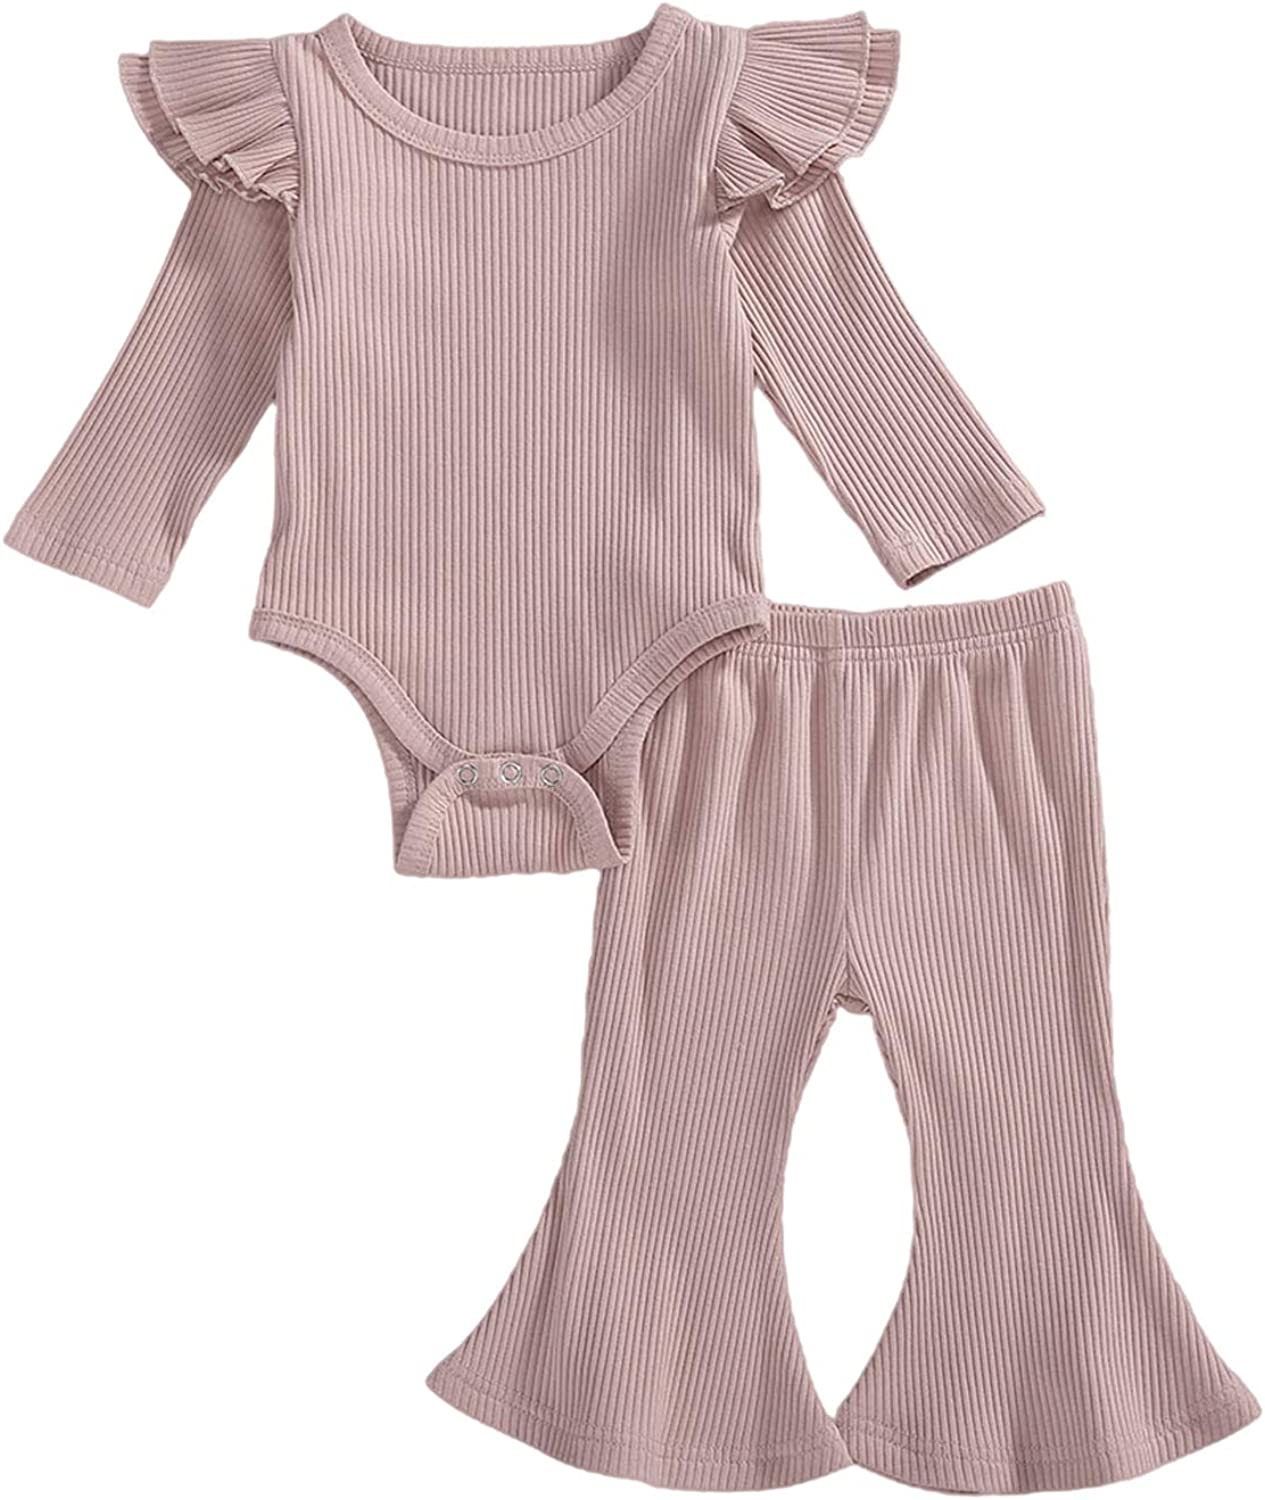 Time sale Fall Winter Newborn Baby Girl Clothes Ribbed Bodys Ranking integrated 1st place Solid Rompers